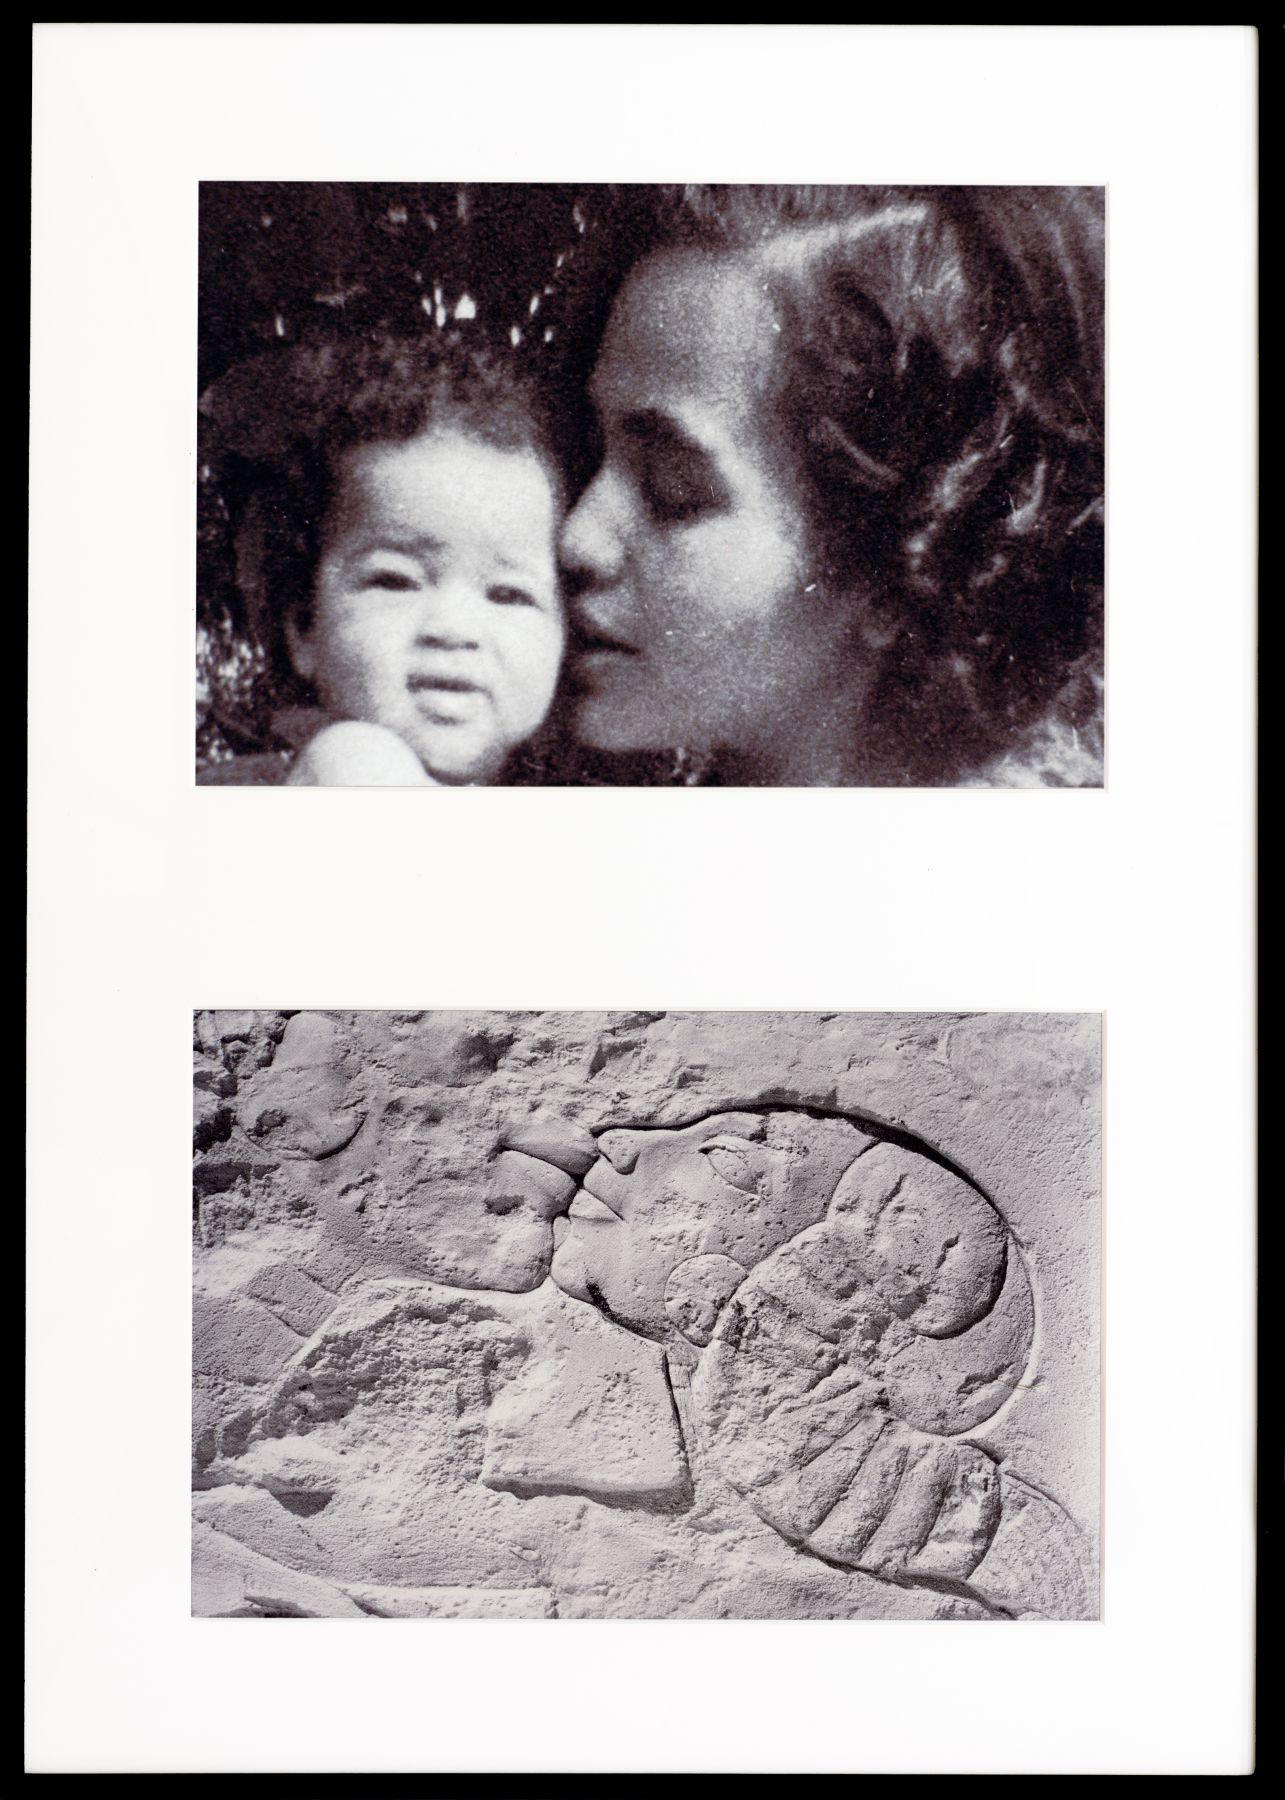 Miscegenated Family Album (A Mother's Kiss), T: Candace and Devonia; B: Nefertiti and daughter, 1980/1994, Cibachrome prints, 37h x 26w in (93.98h x 66.04w cm)